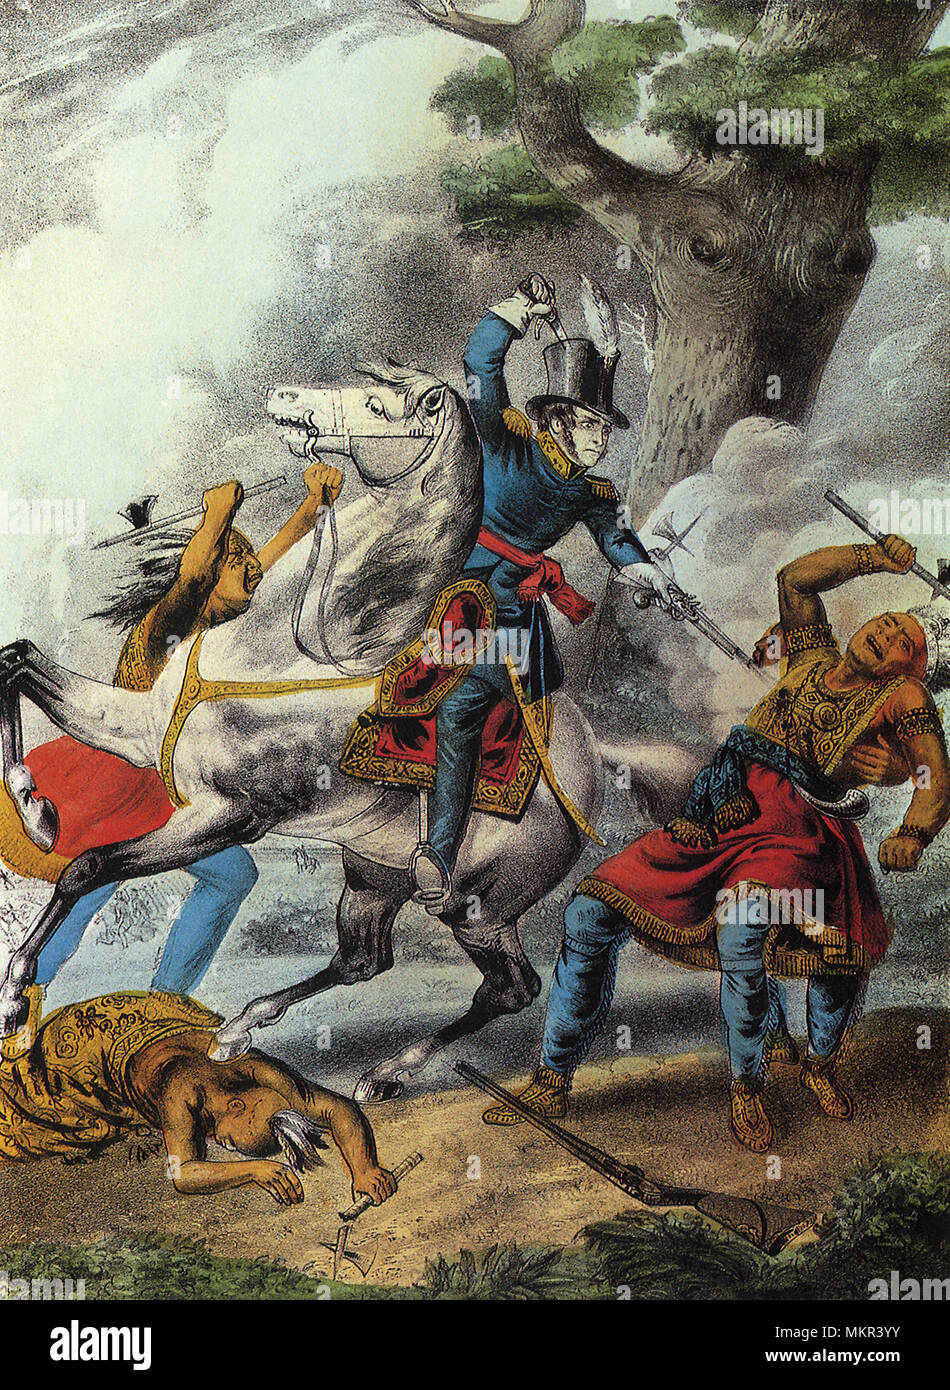 Death of Tecumseh, Battle of the Thames Oct. 18, 1813